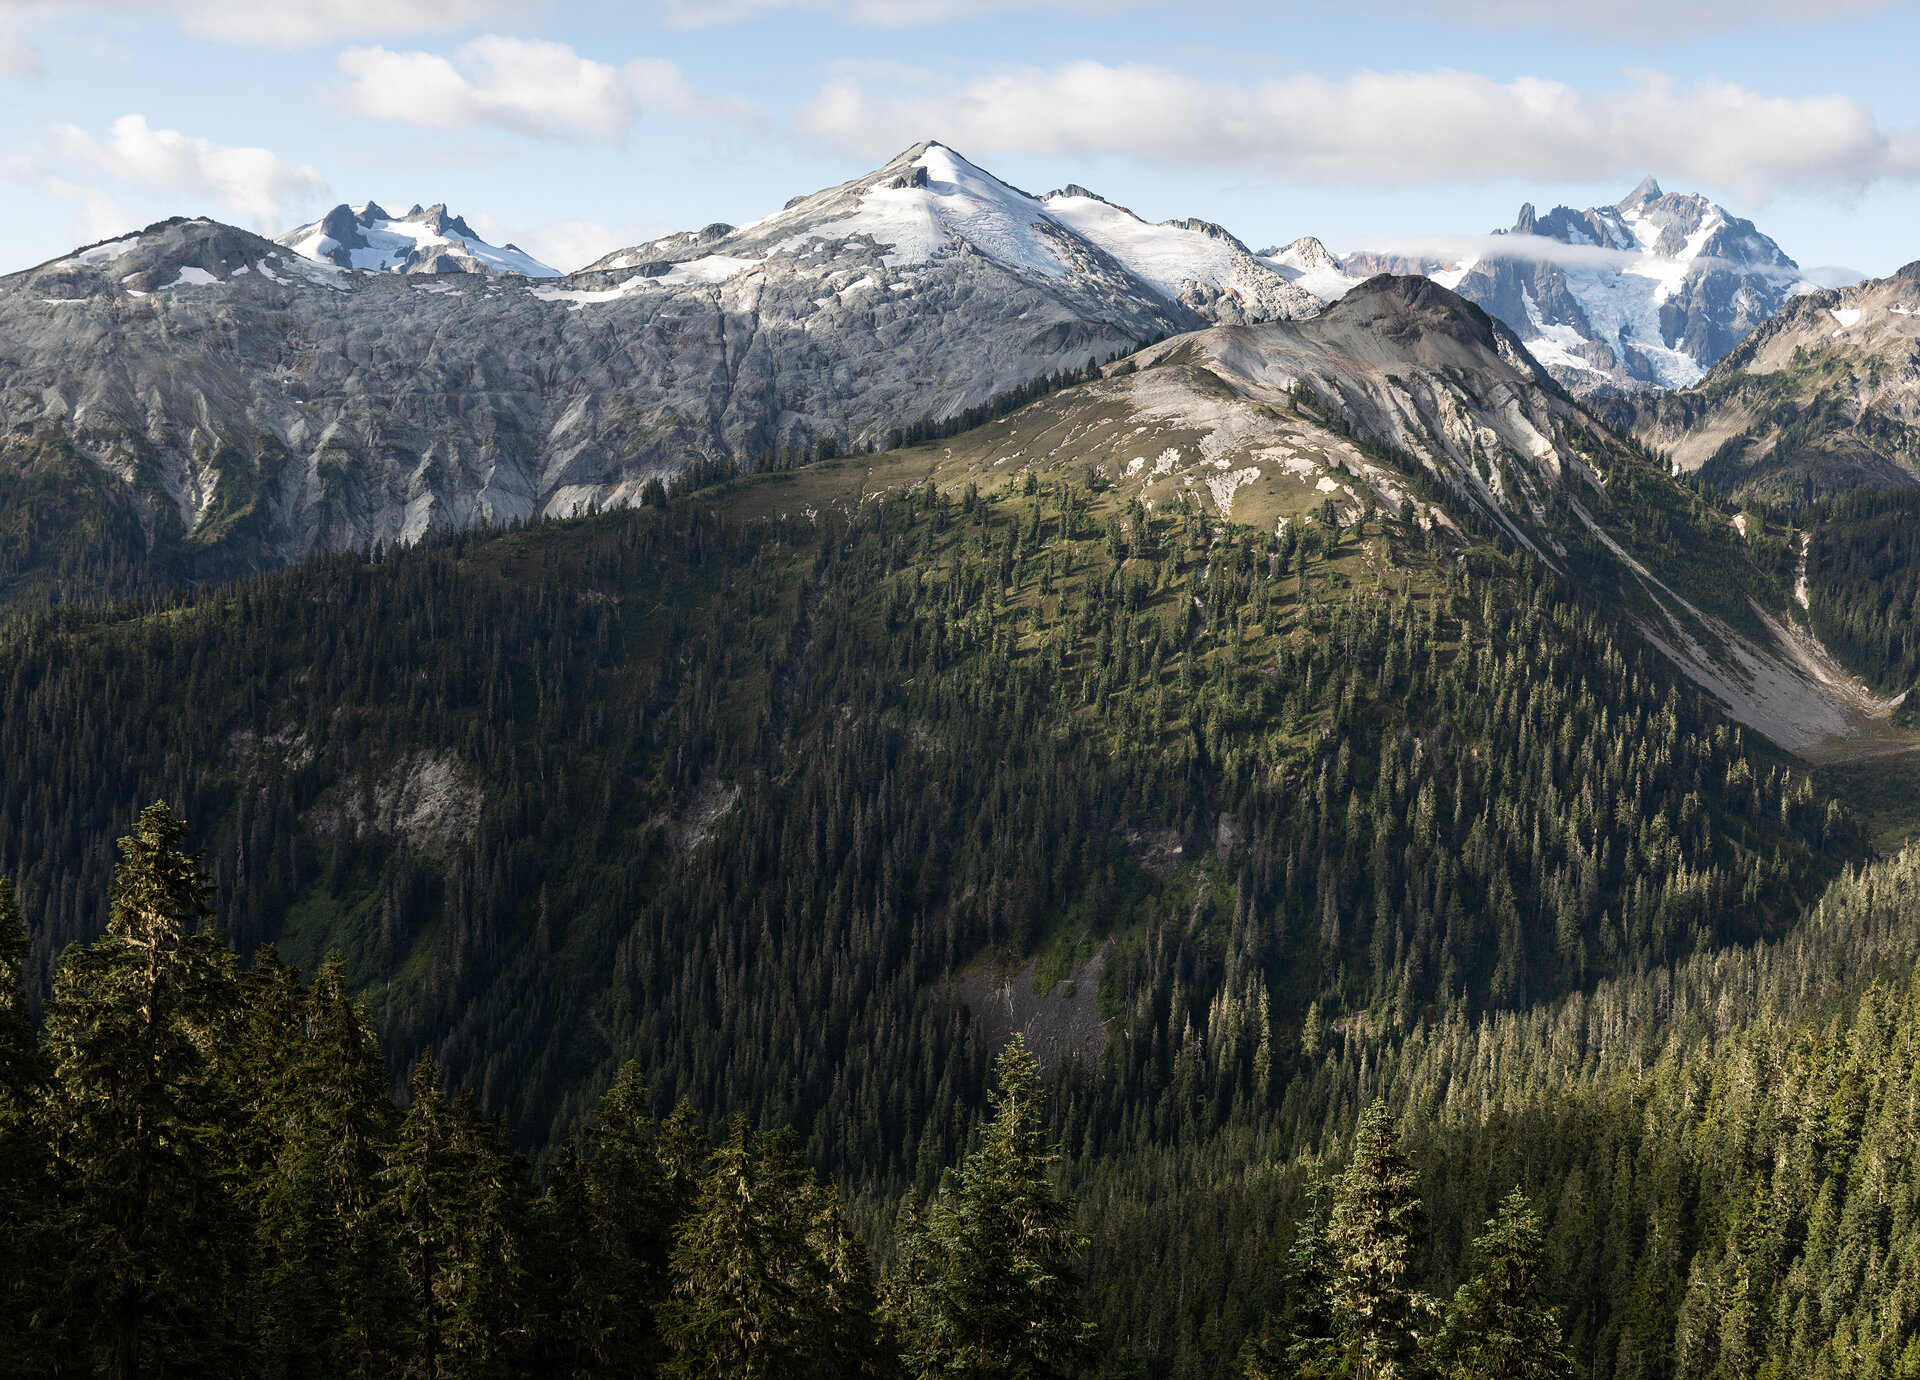 Icy Peak, Ruth Mountain, and Mount Shuksan seen on the trail from Silesia Camp to Hannegan Pass